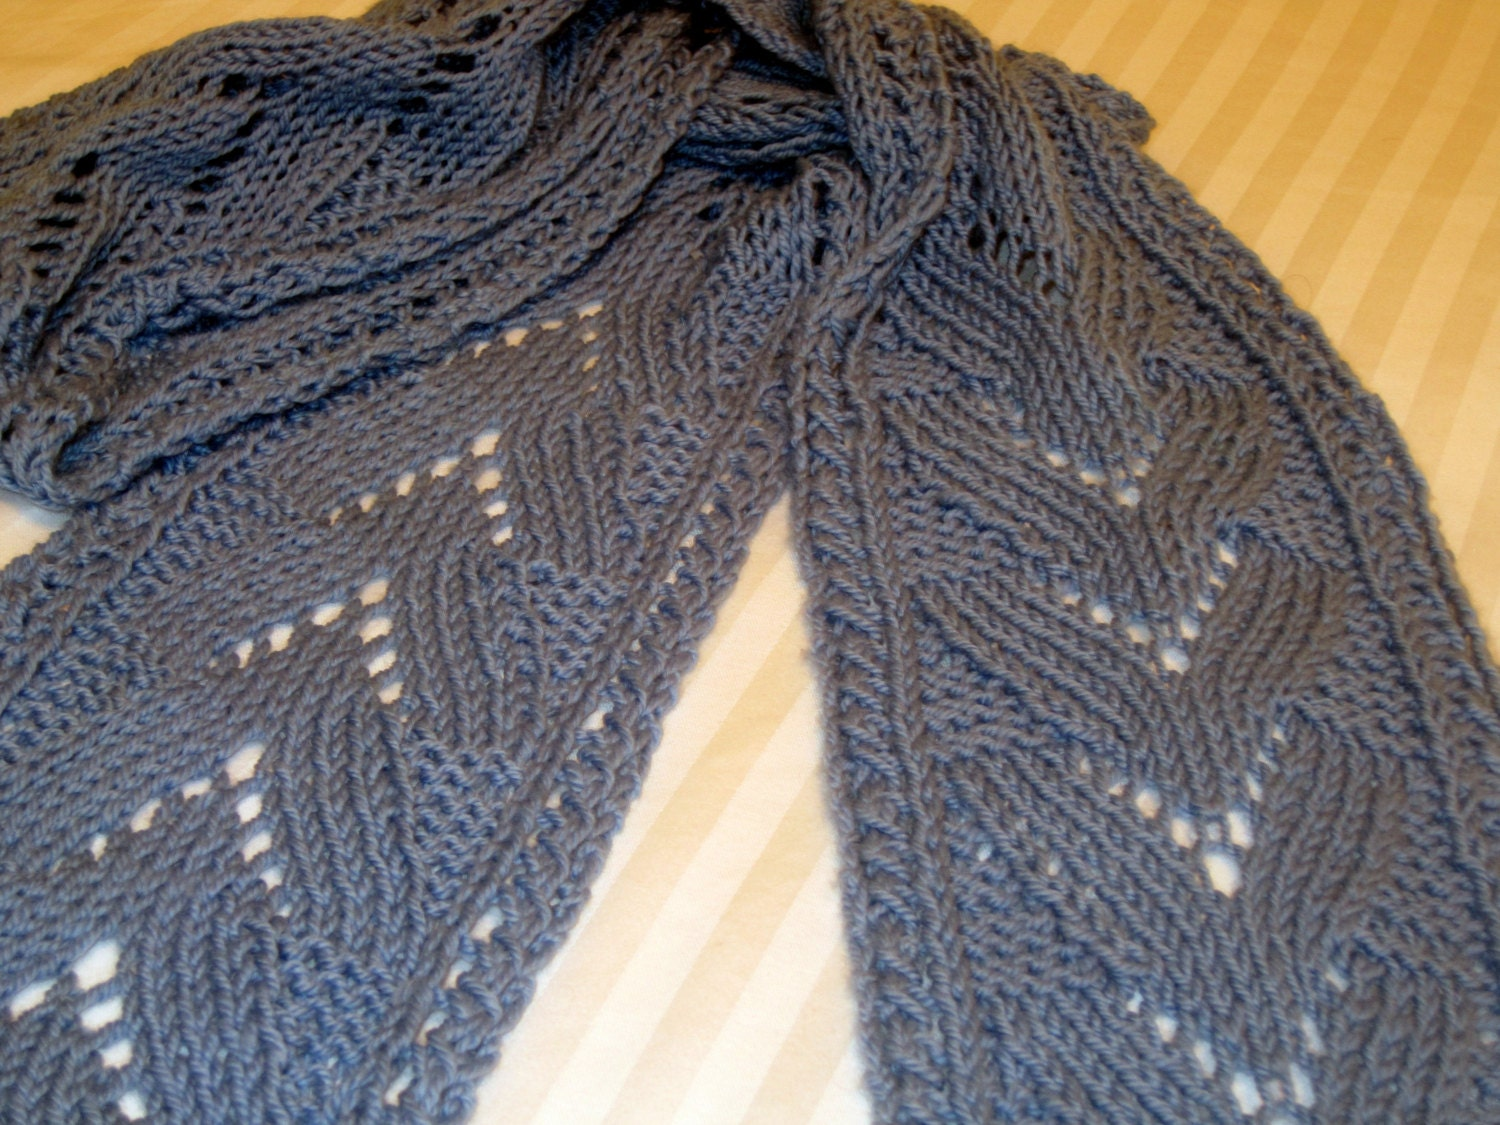 Ripple Lace Knitting Pattern : PDF Knitting Pattern for Lace Ripple and Wave Scarf